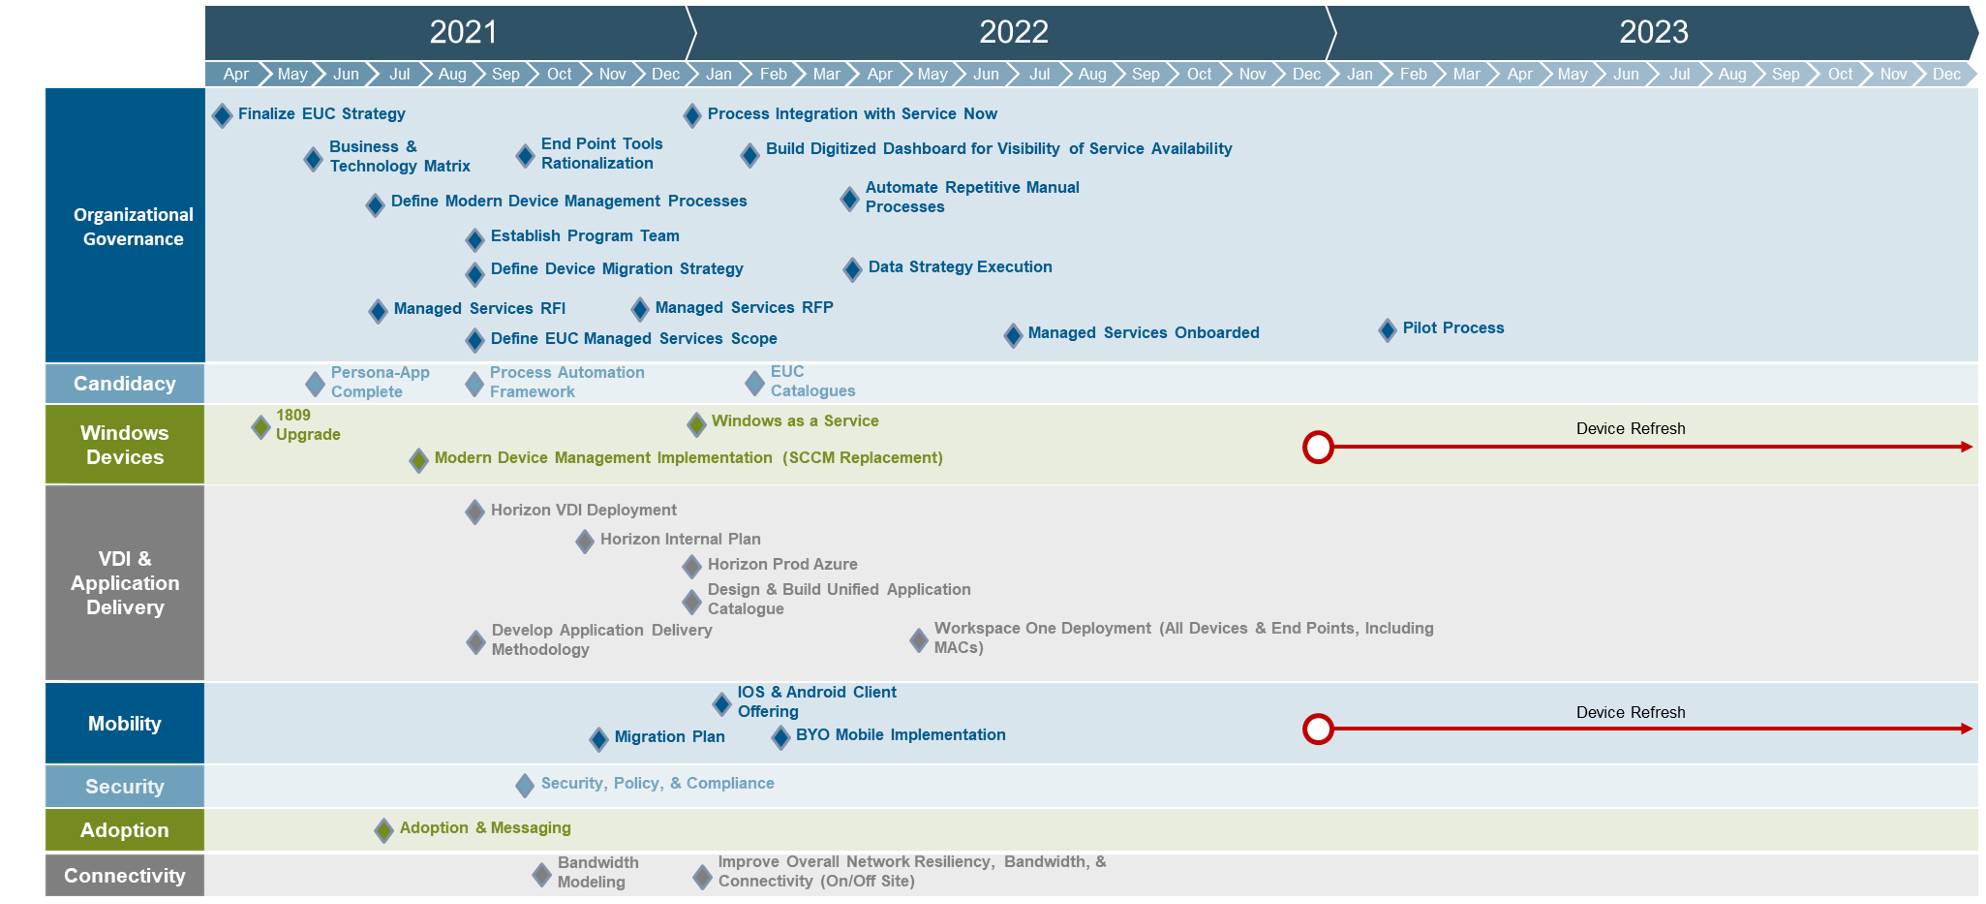 Example of a technology roadmap after completing our DPM process, including timelines through 2023.